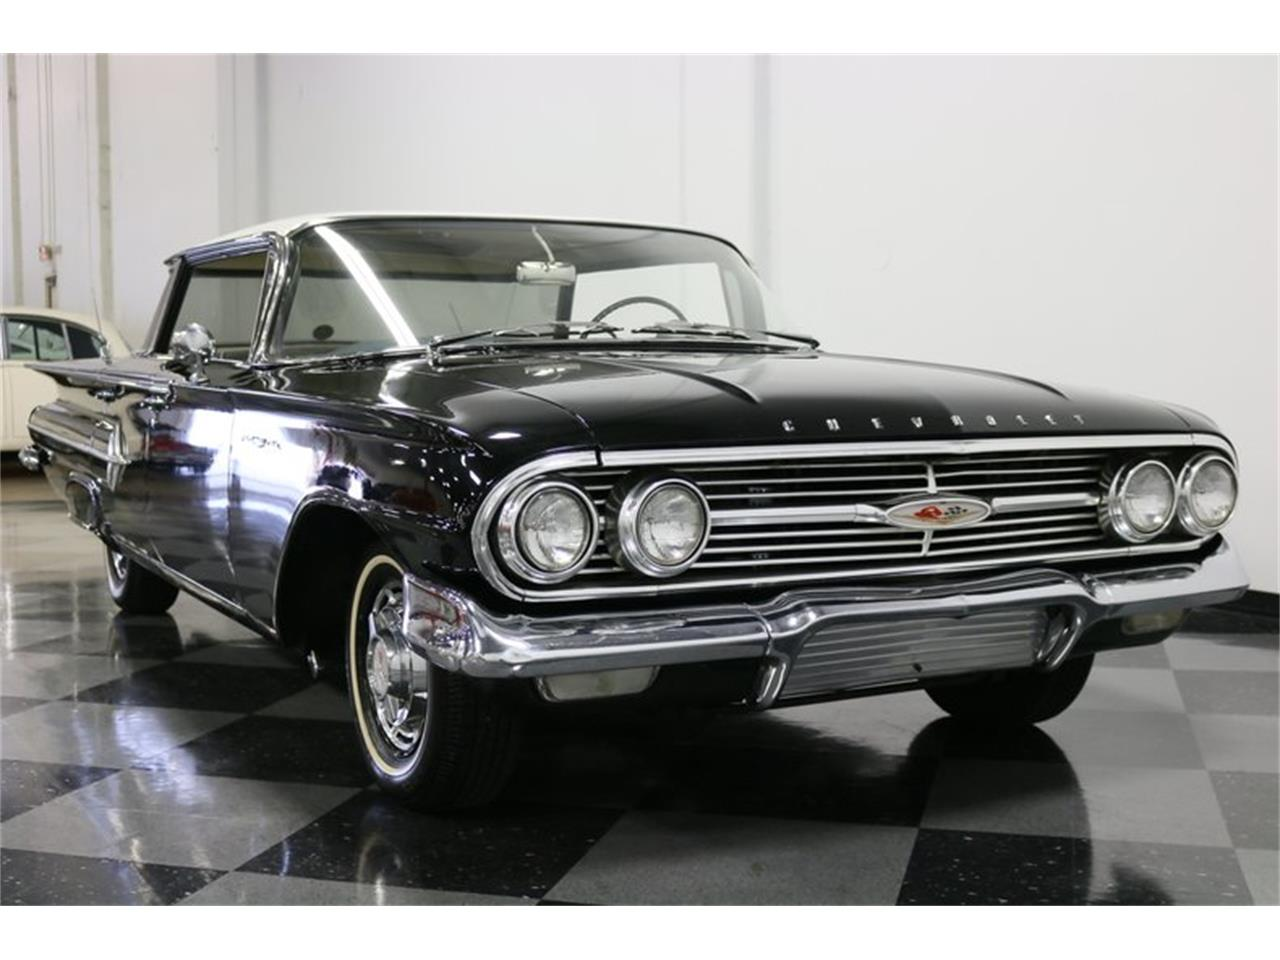 Large Picture of 1960 Chevrolet Bel Air located in Ft Worth Texas Offered by Streetside Classics - Dallas / Fort Worth - PH6I